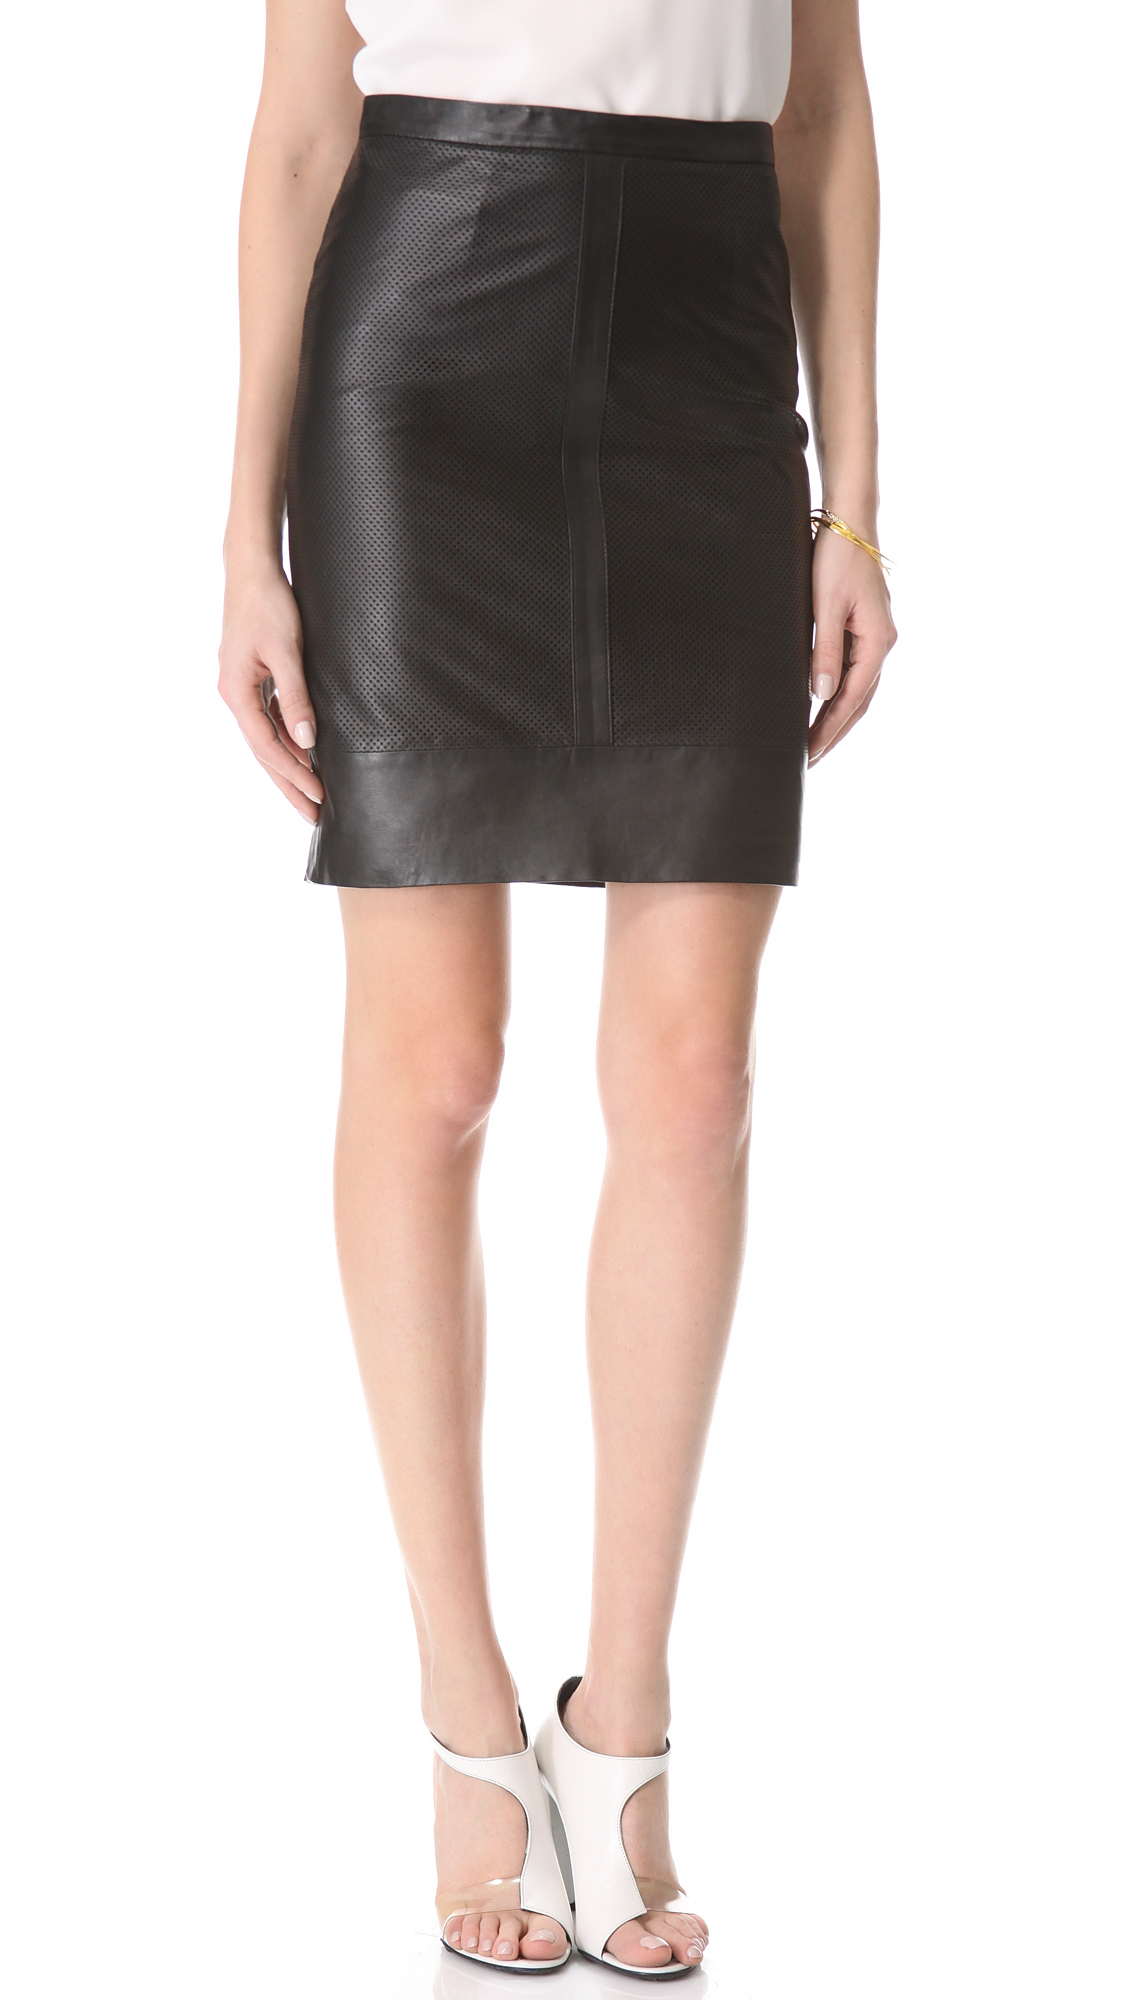 Available In Black And Mauve High Rise Pencil Skirt Full Stretch Knee-Length 80% Cotton 15% Polyester 5% Spandex.